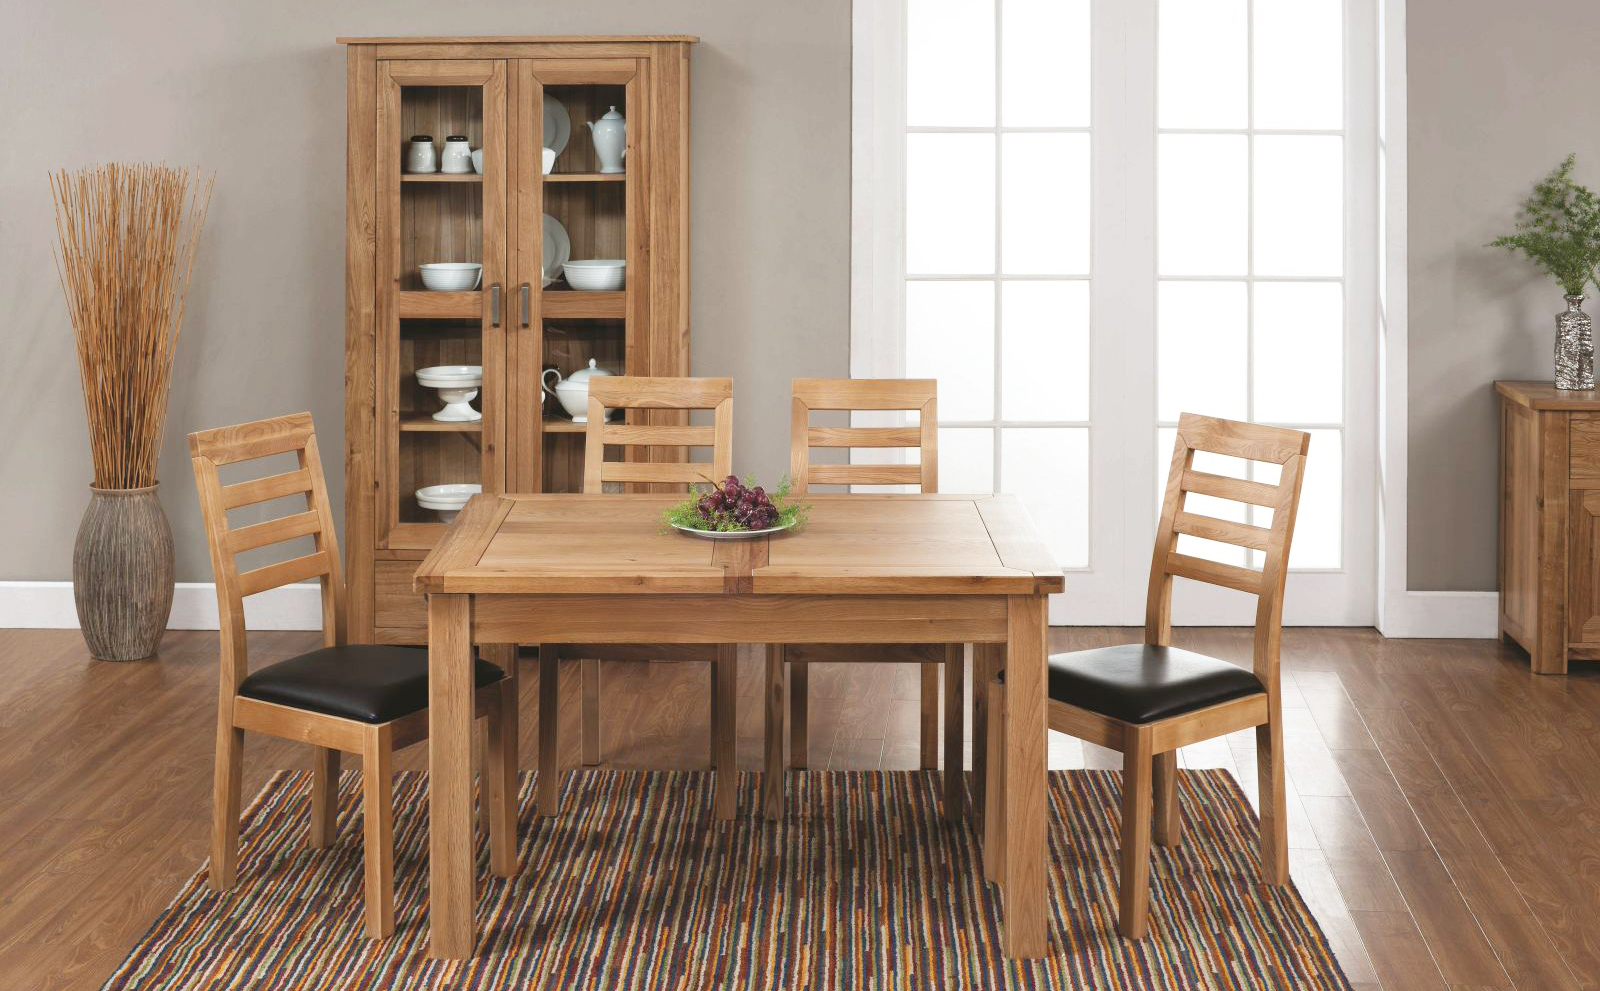 the-best-wooden-furniture-material-dining-room-design-with-ergonomic-high-back-oak-unfinished-furniture-oak-furniture-chairs-on-brown-rug-vinyl-flooring-design